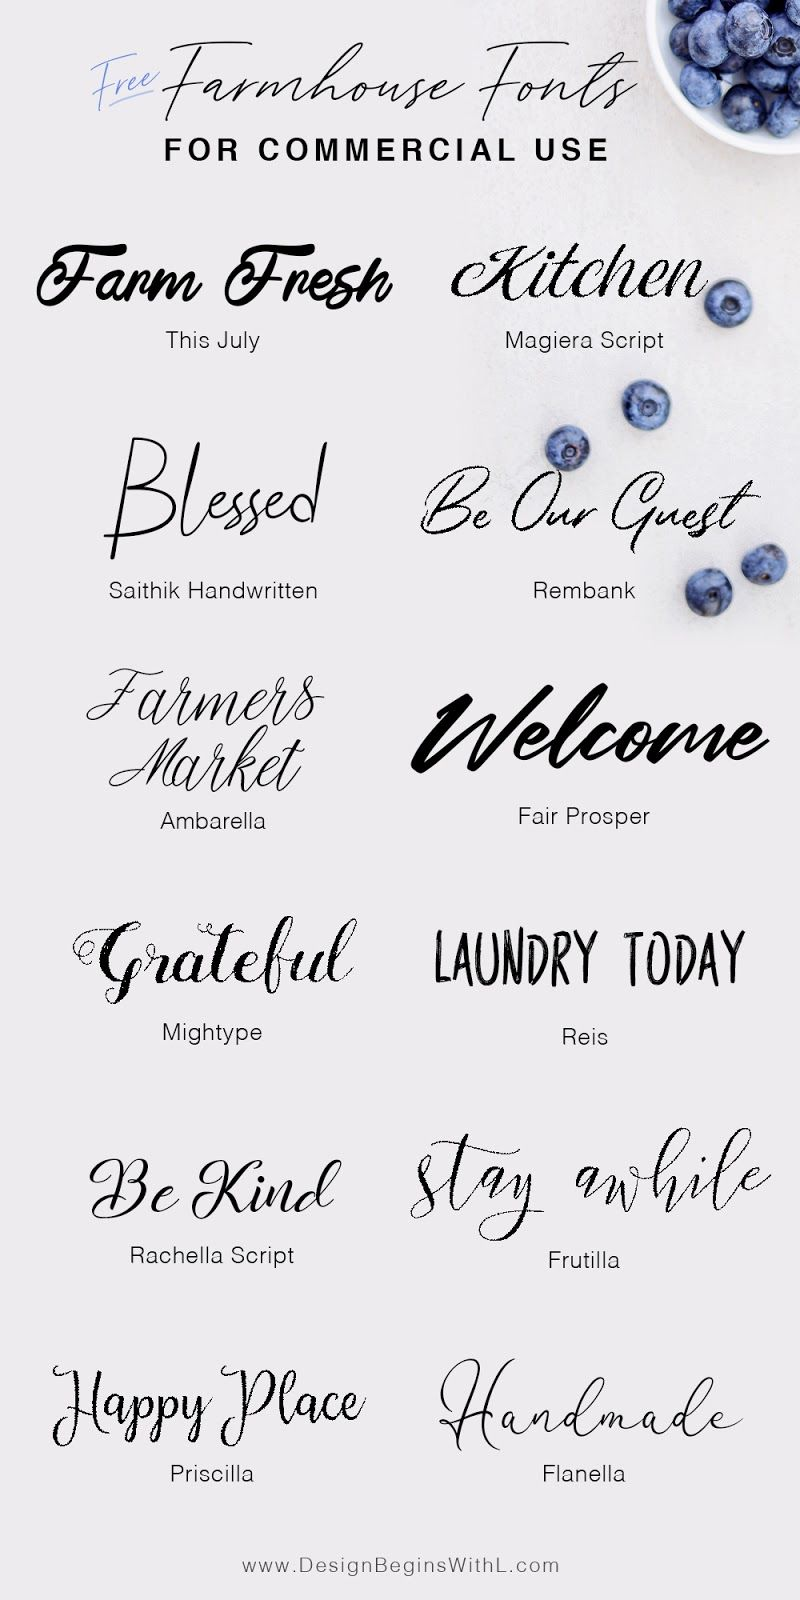 12 Free Farmhouse Fonts For Commercial Use Farmhouse